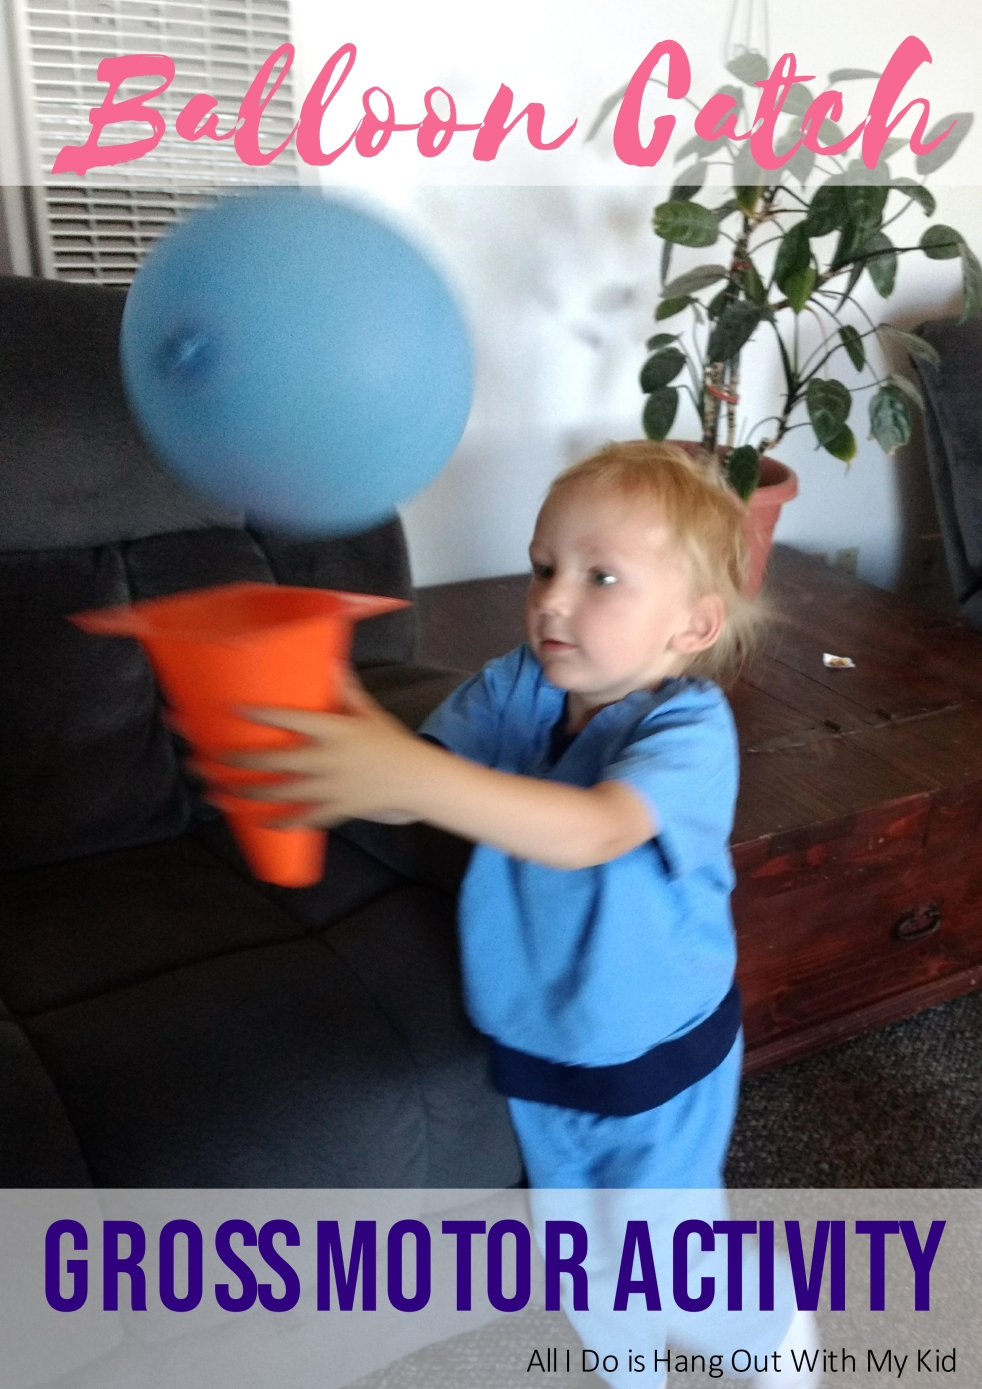 A fun way to keep your little ones moving and working their muscles!